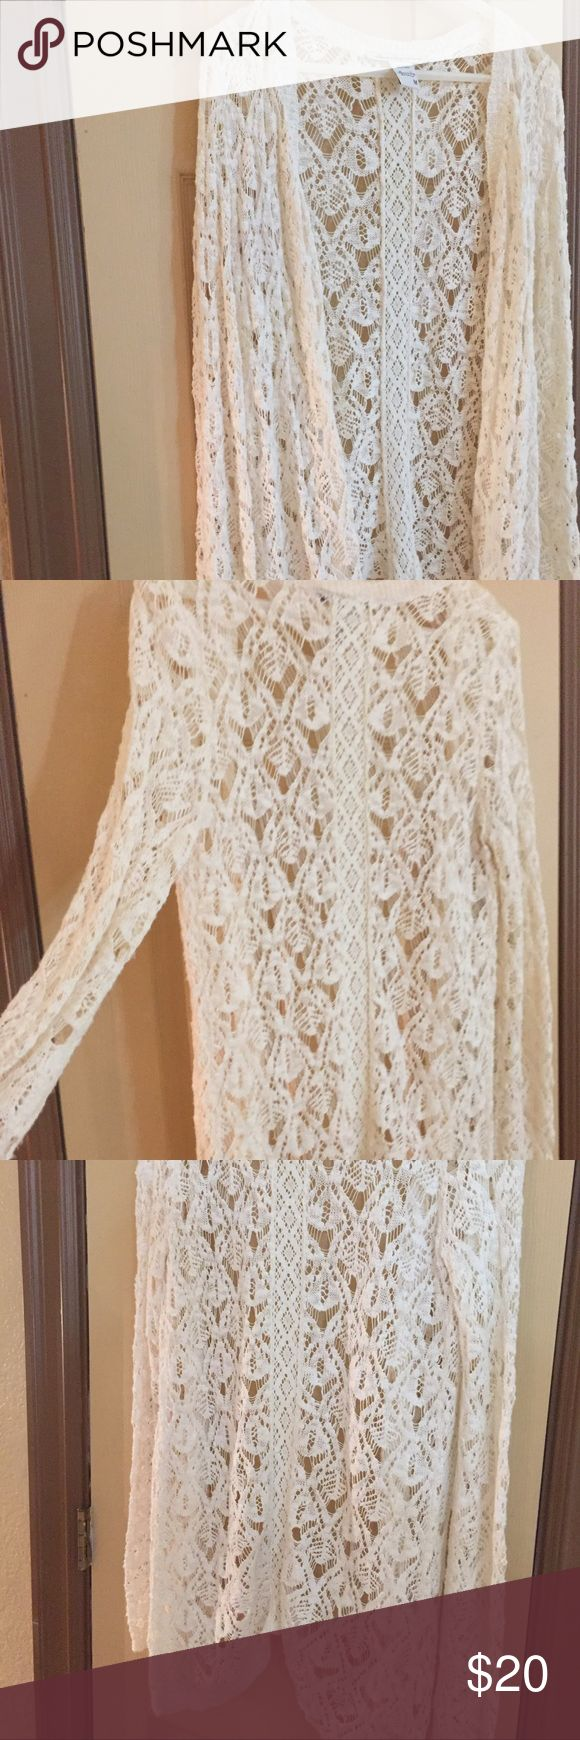 American Rag Med cream cardigan never worn American Rag crochet type cardigan size medium the color is cream would go with anything and never has been worn American Rag Sweaters Cardigans